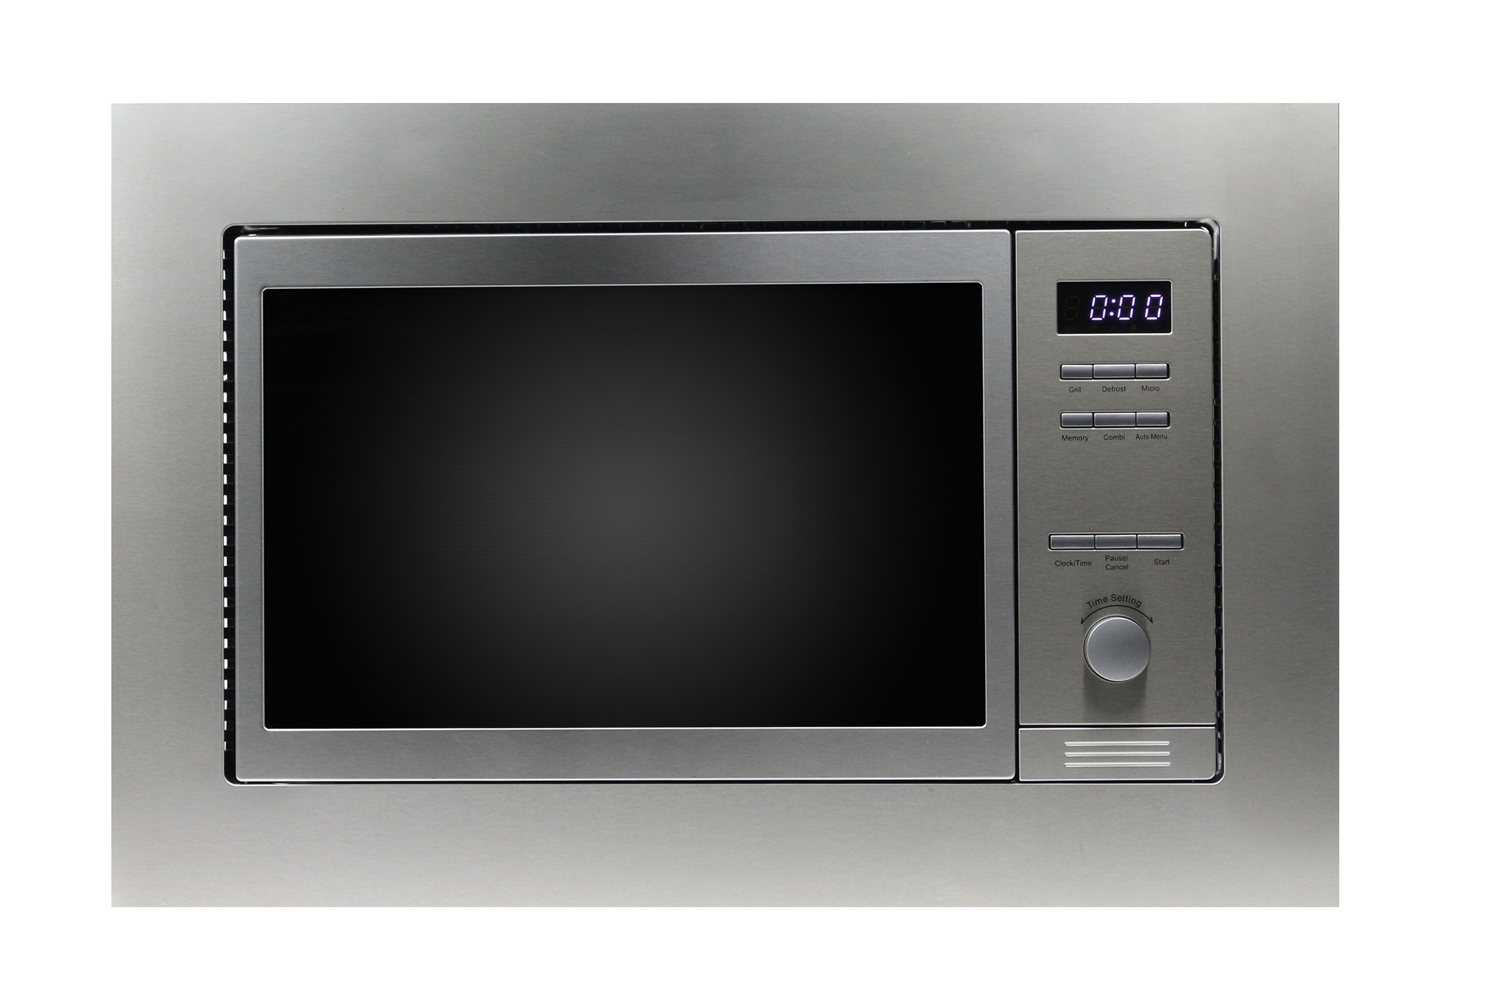 Equator-Deco Combo Microwave Oven